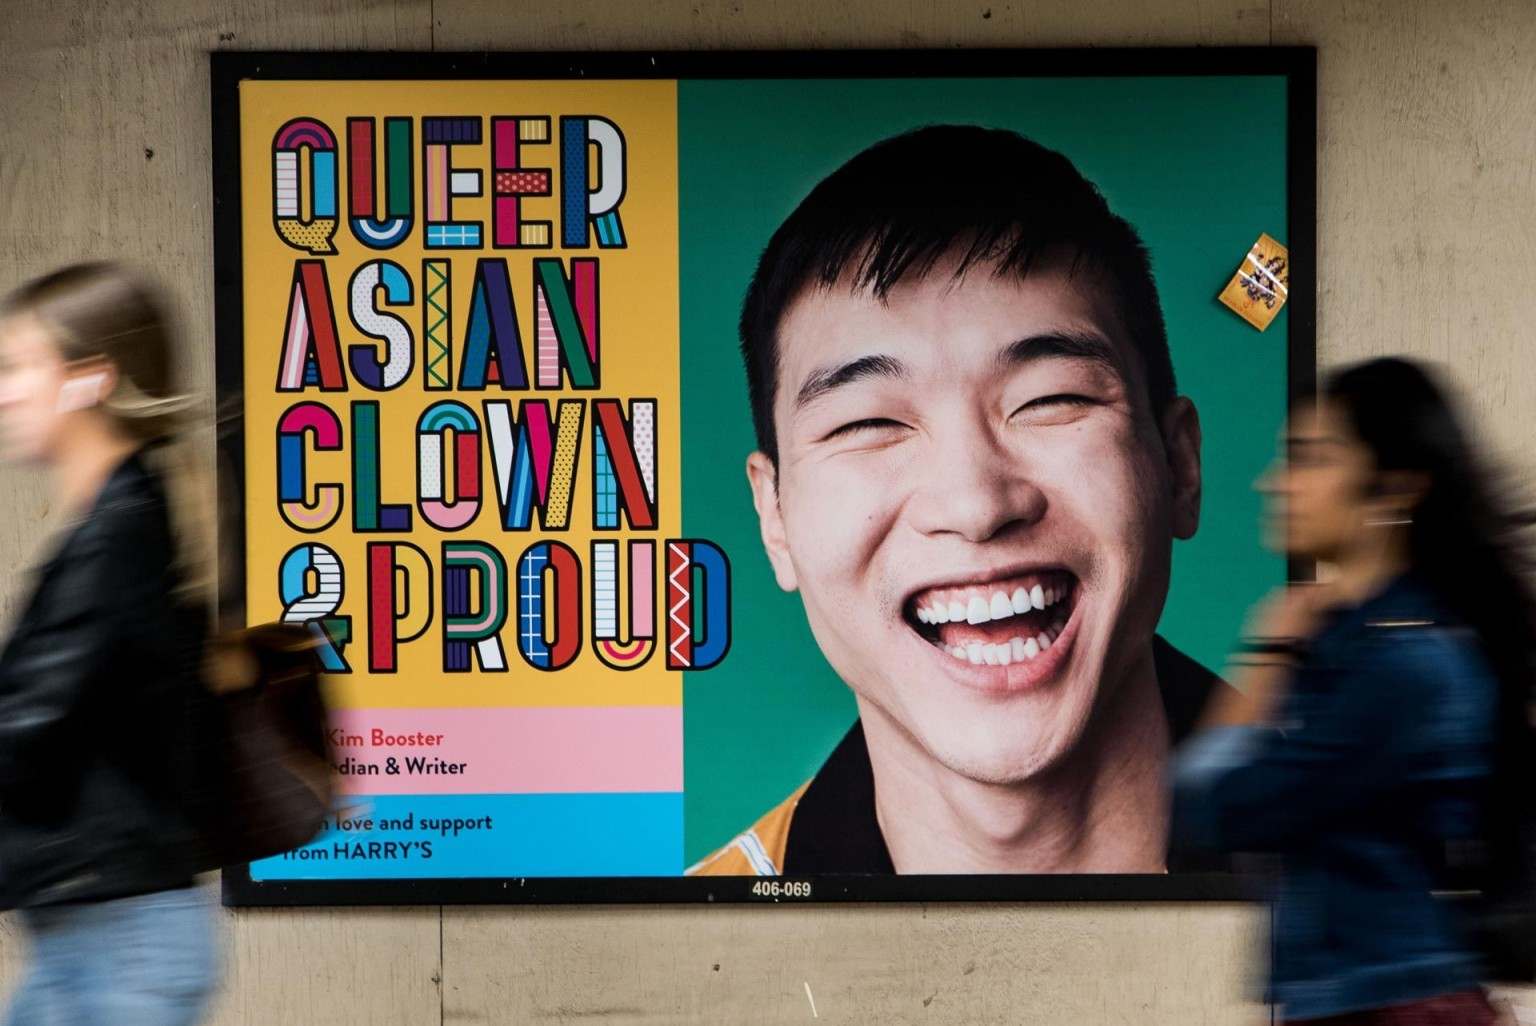 Harry's #AndProud NYC Pride Campaign